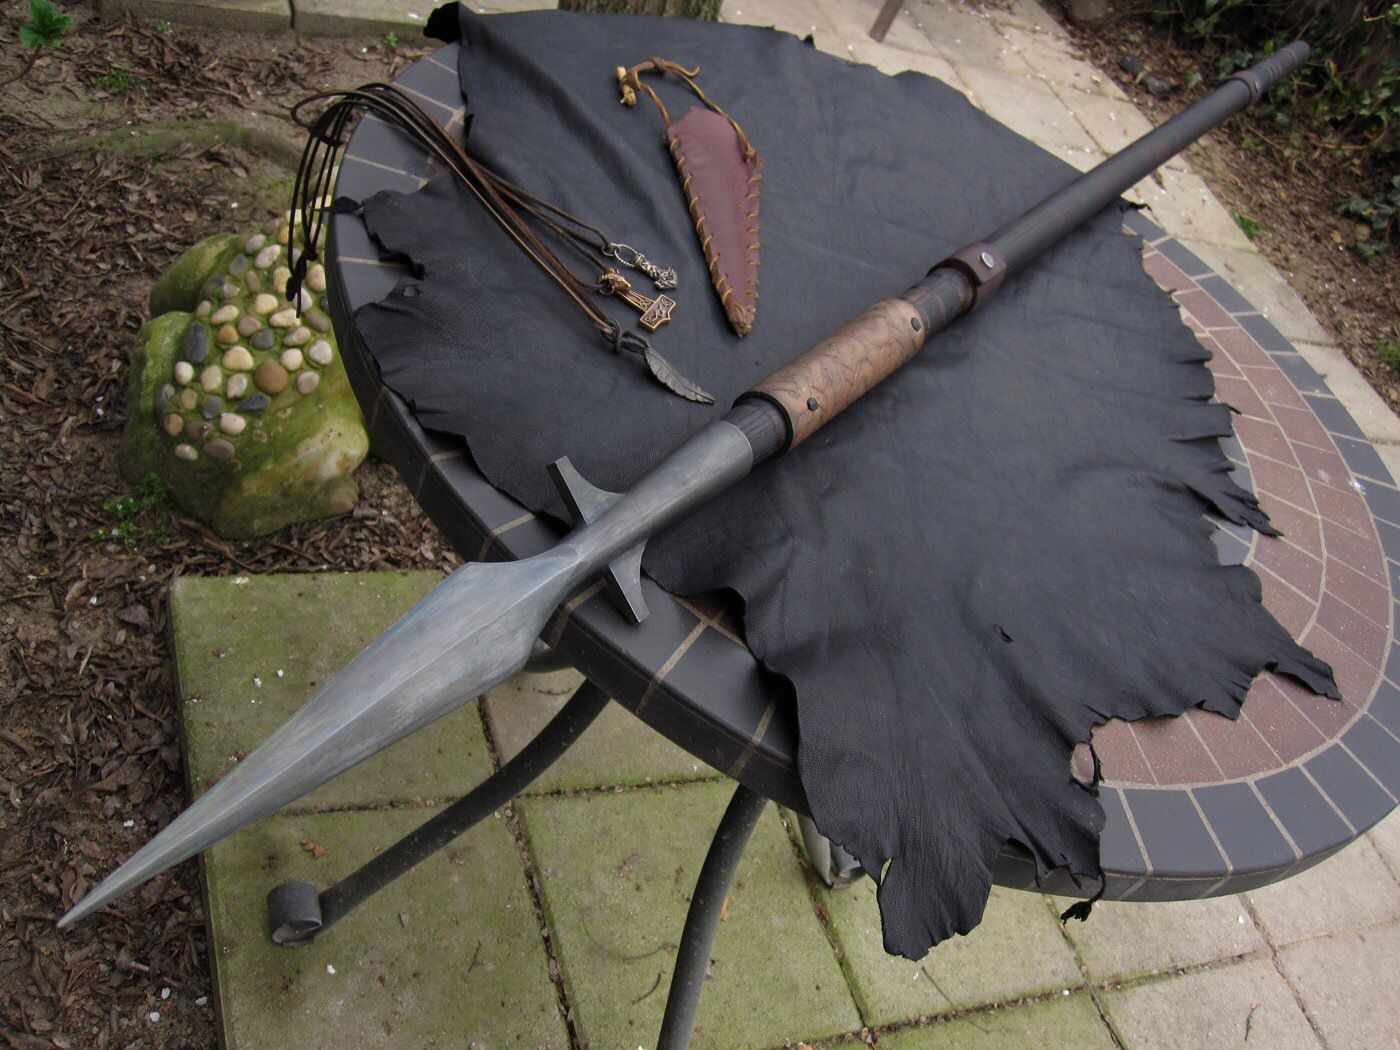 Viking spear By Mace Leather Works | Mace leather works